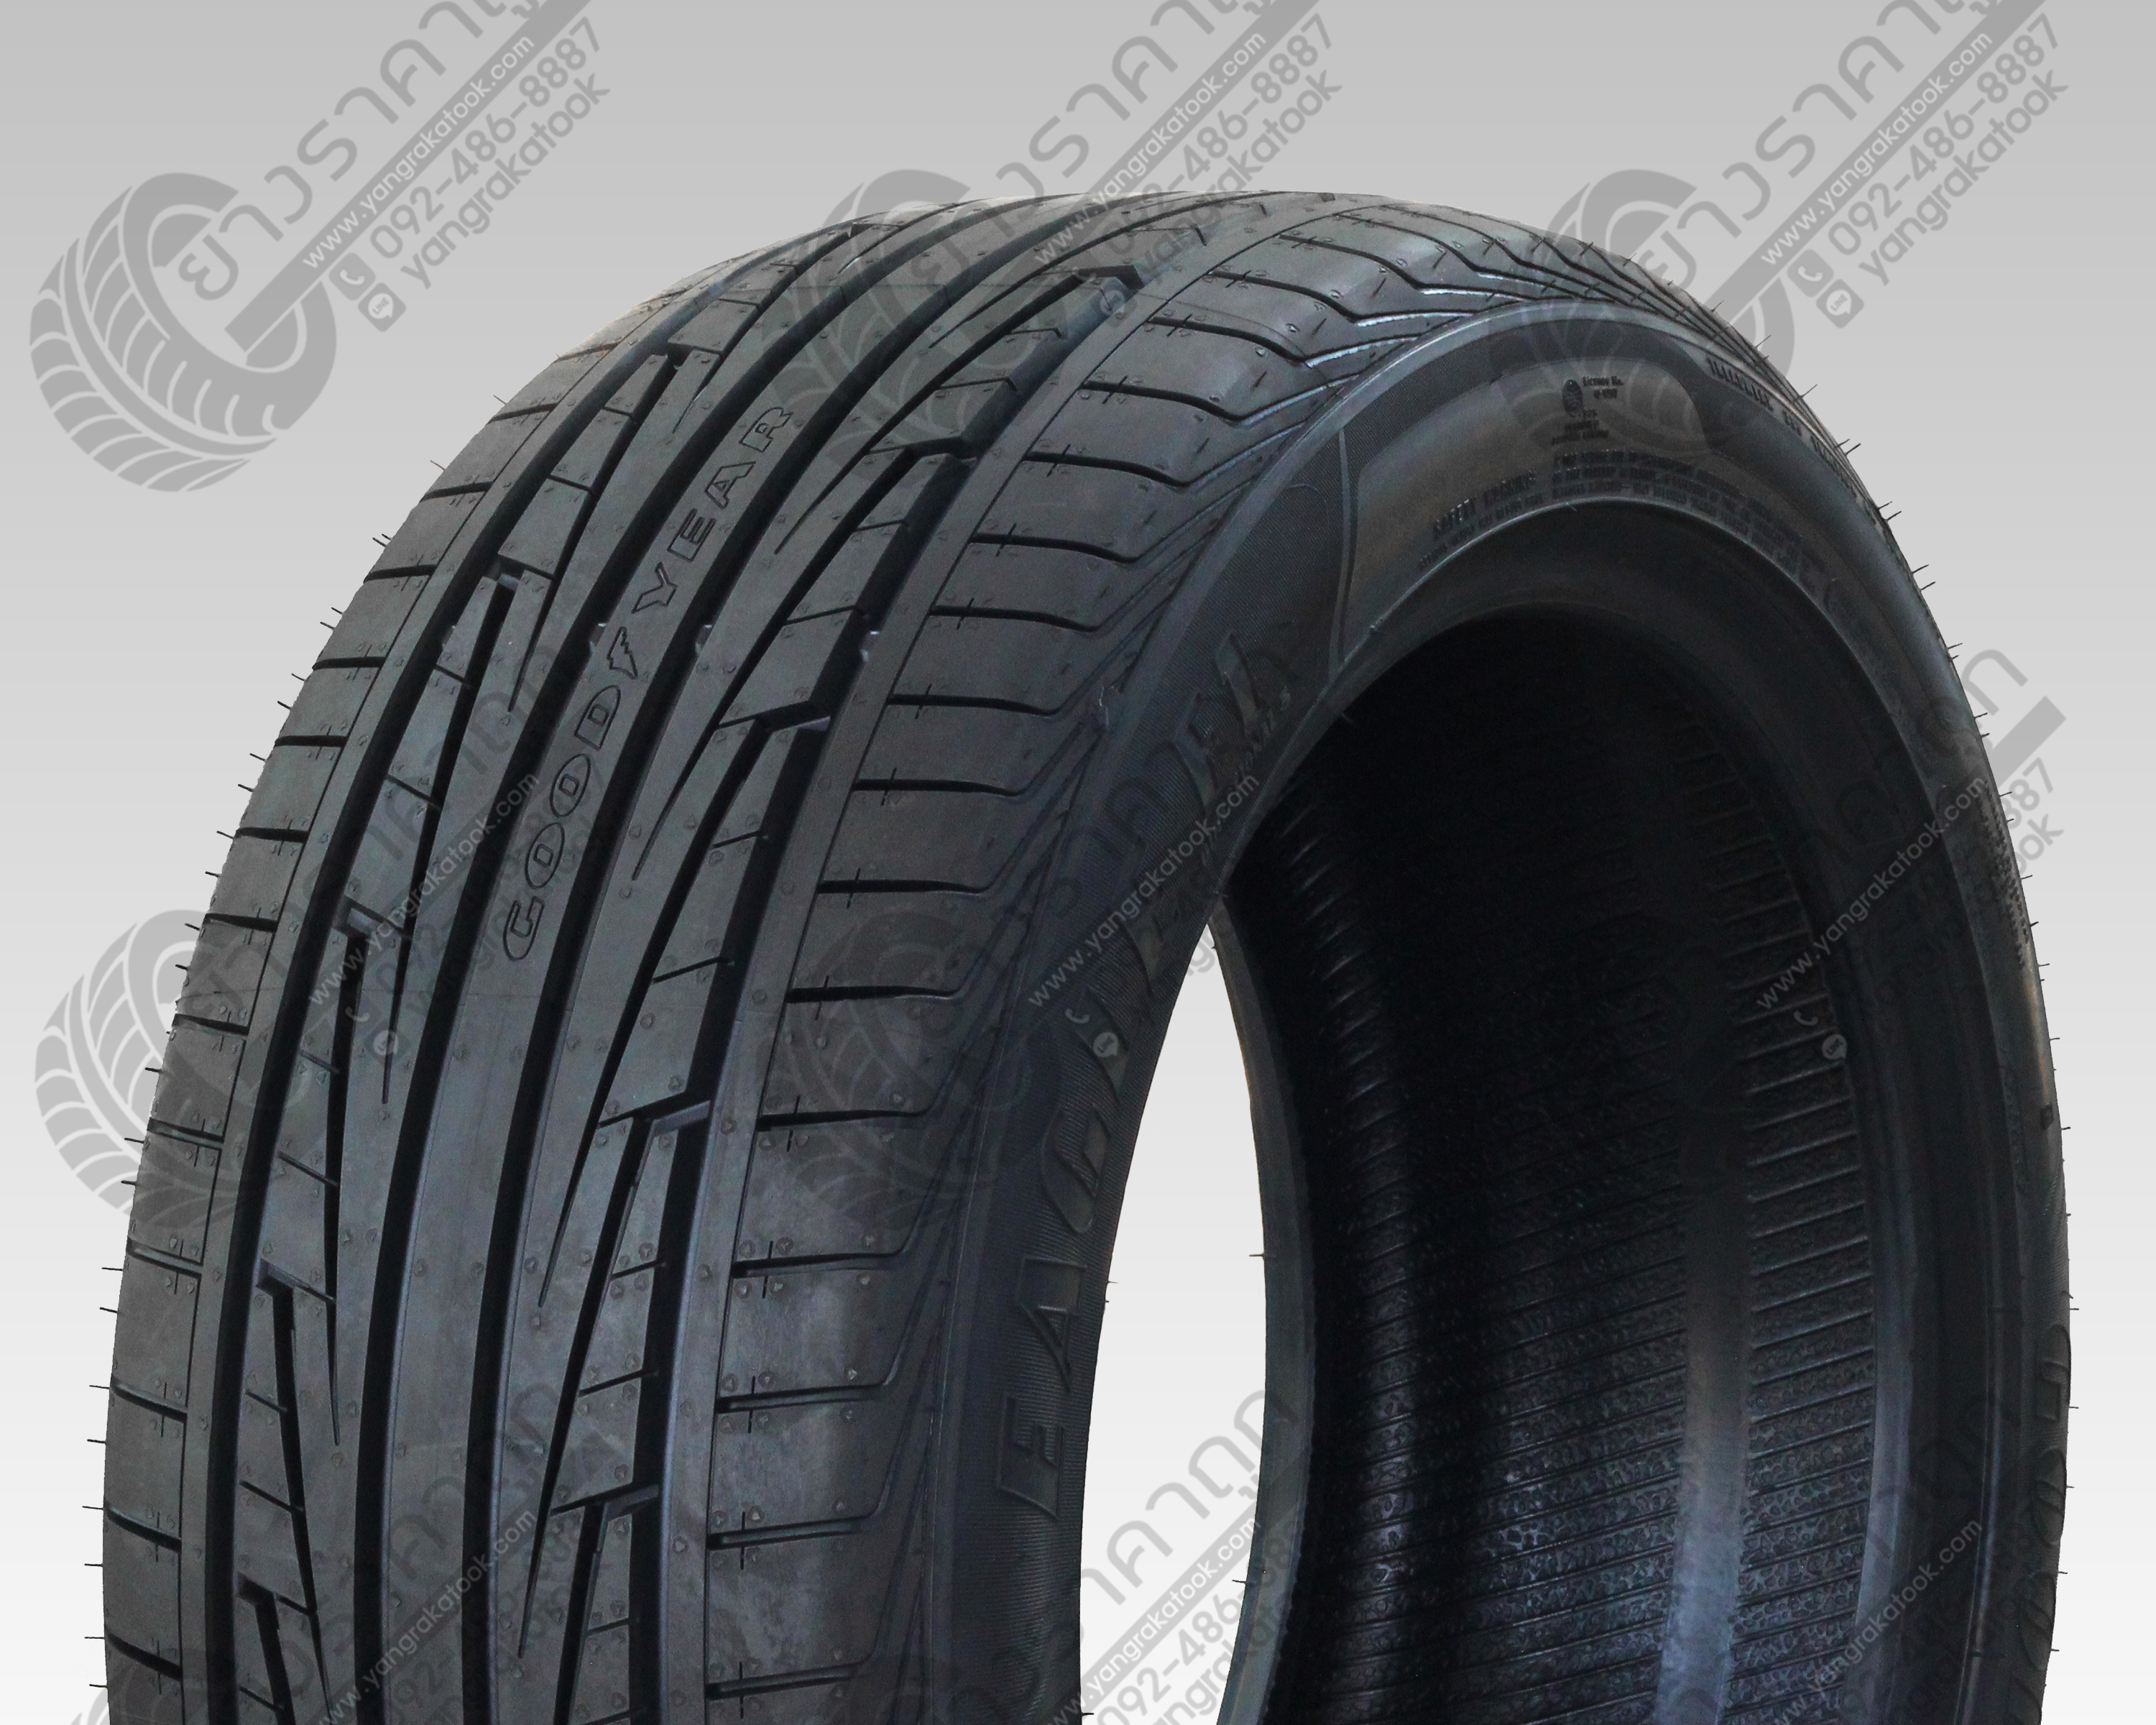 Goodyear F1 Directional 5 195/55R15 ปี17